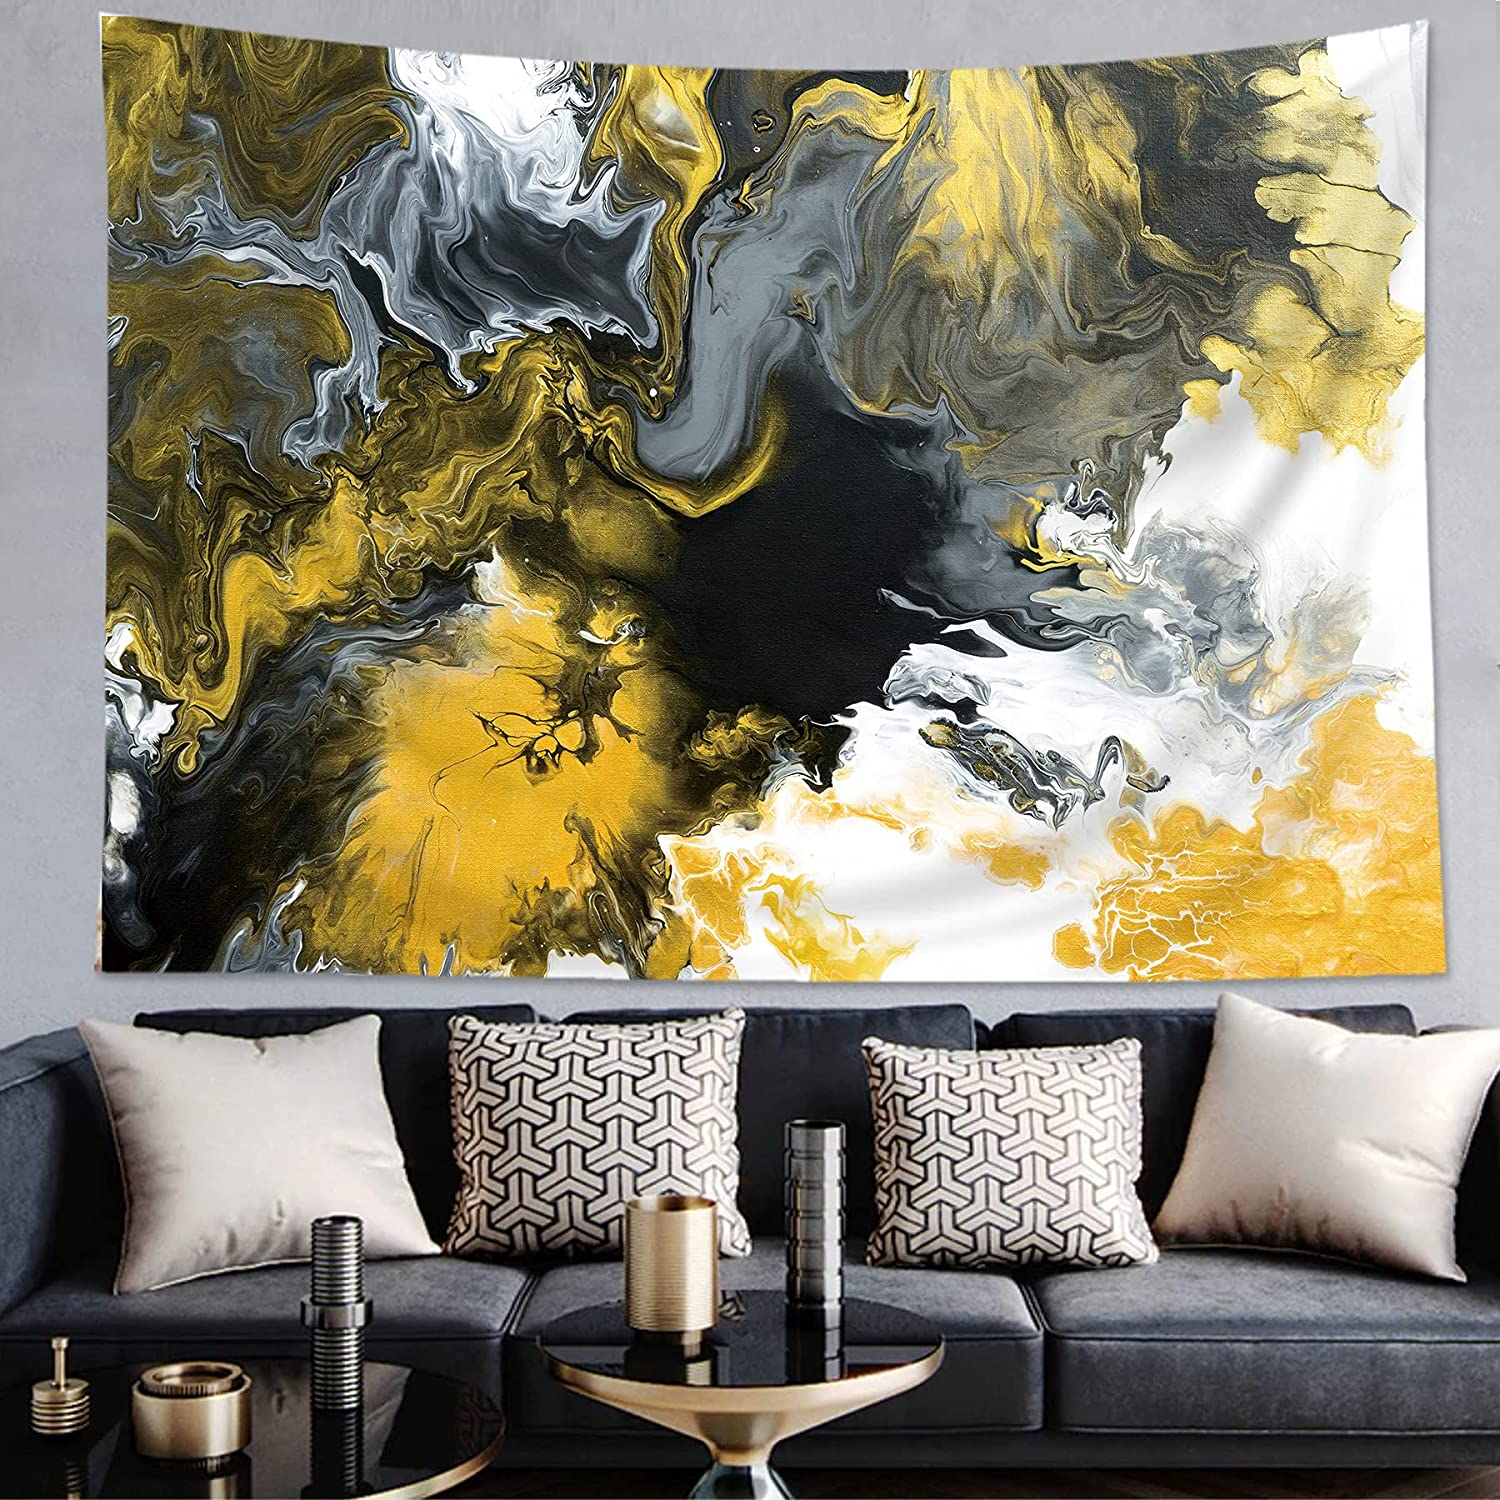 AMBZEK Black Gold Marble Tapestry 30Hx40W Inch Retro Abstract Acrylic Texture White Grey Yellow Luxurious Graphic Print Artwork Modern Fashion Poster Wall Hanging Bedroom Living Room Dorm Decor Fabric